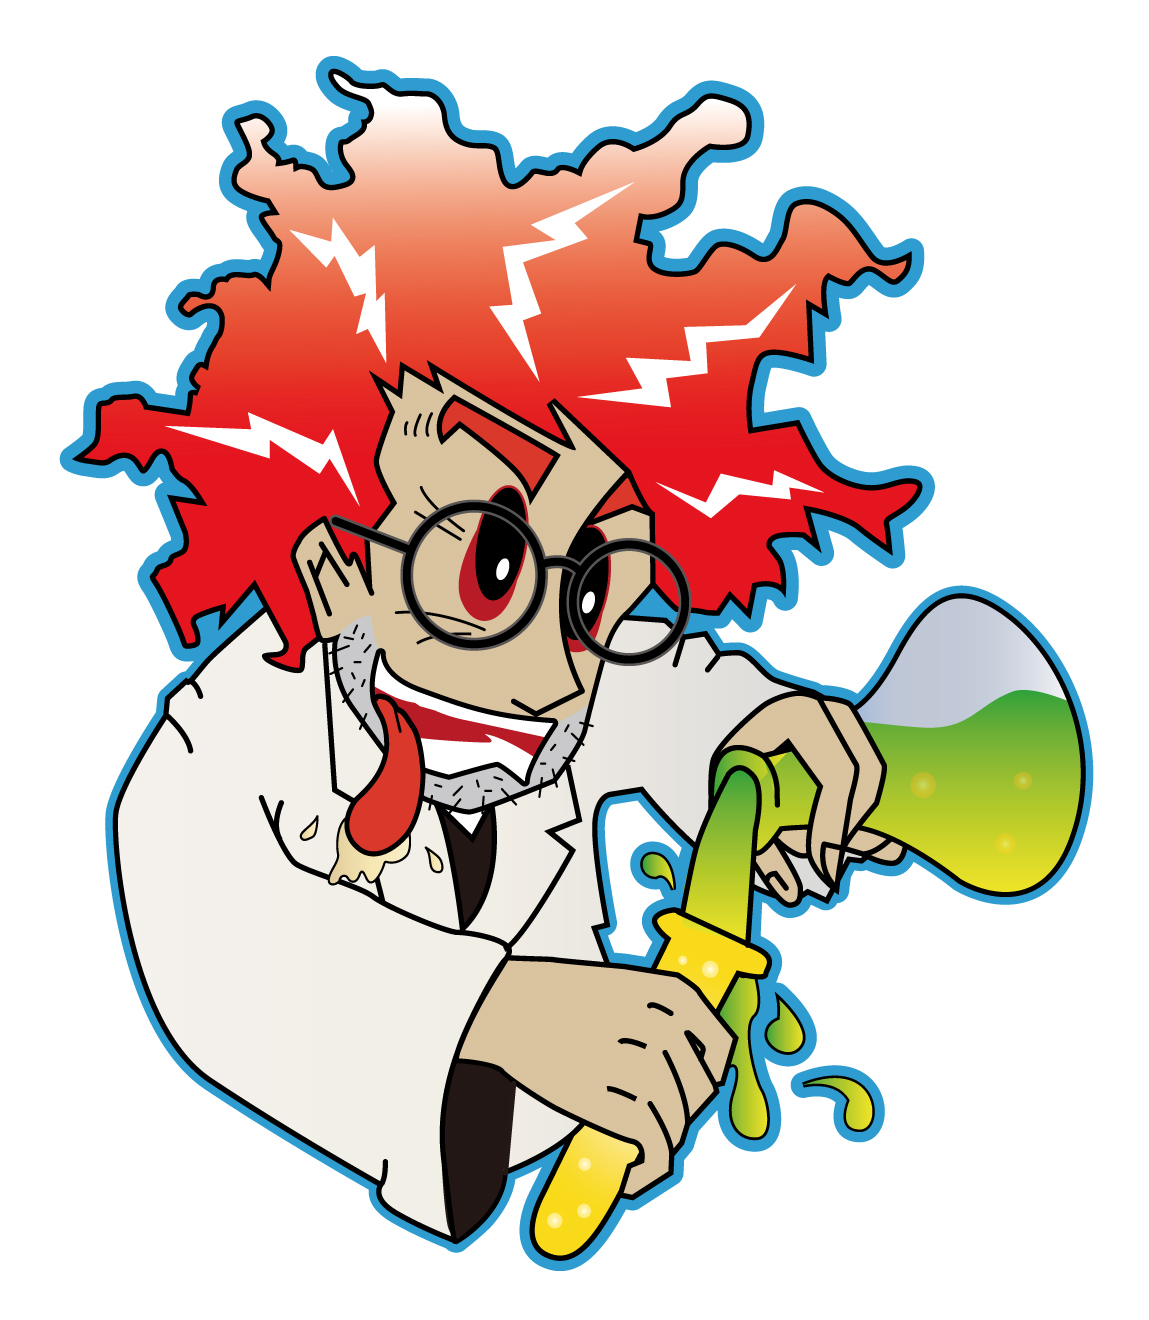 1149x1320 Mad Scientist Sci Fi Phreek Mad Scientist Mad